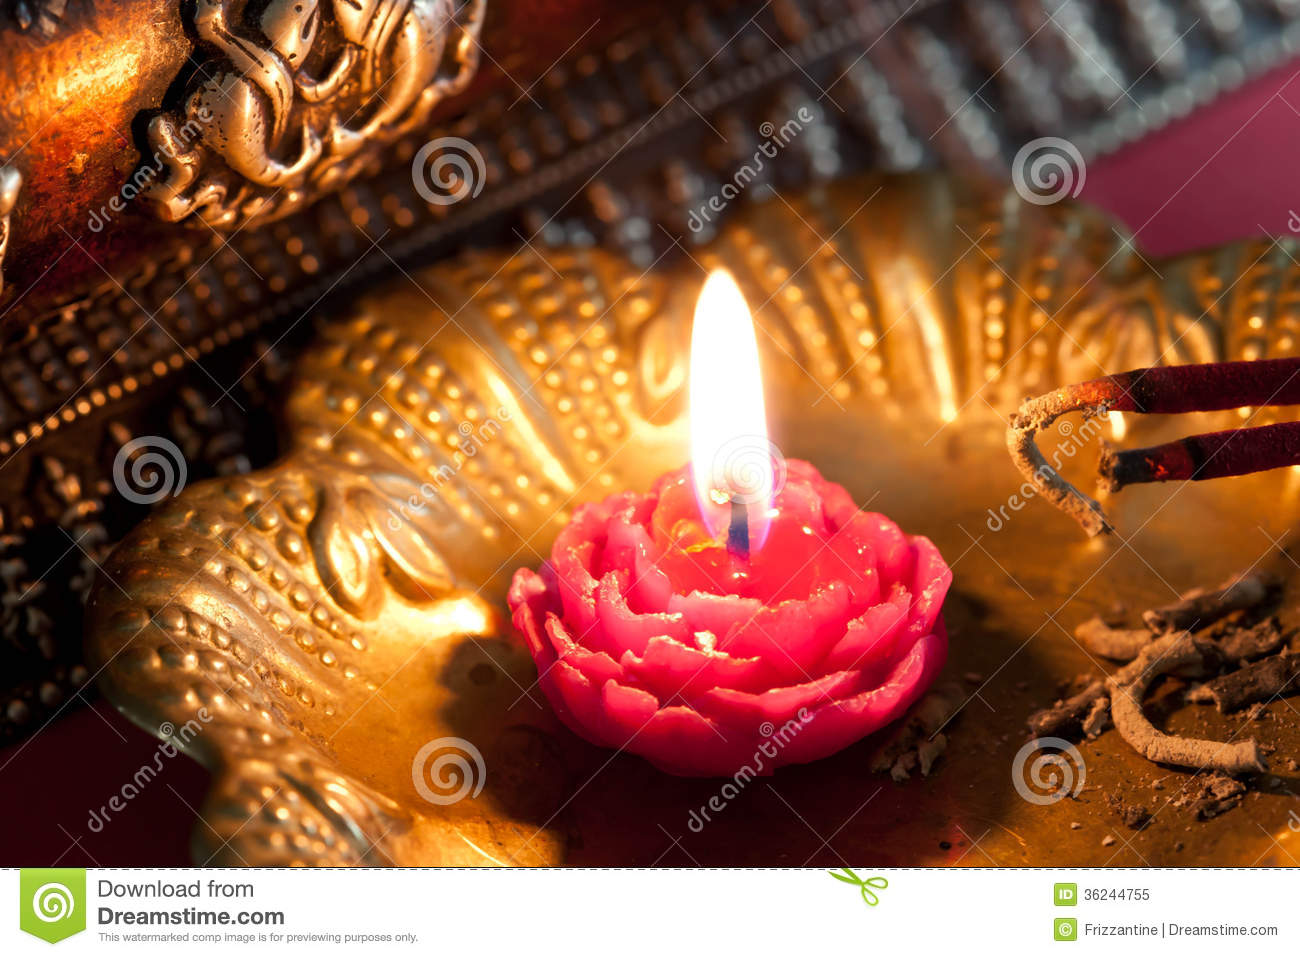 Meditation With Incense And A Candle Royalty Free Stock Photo ...